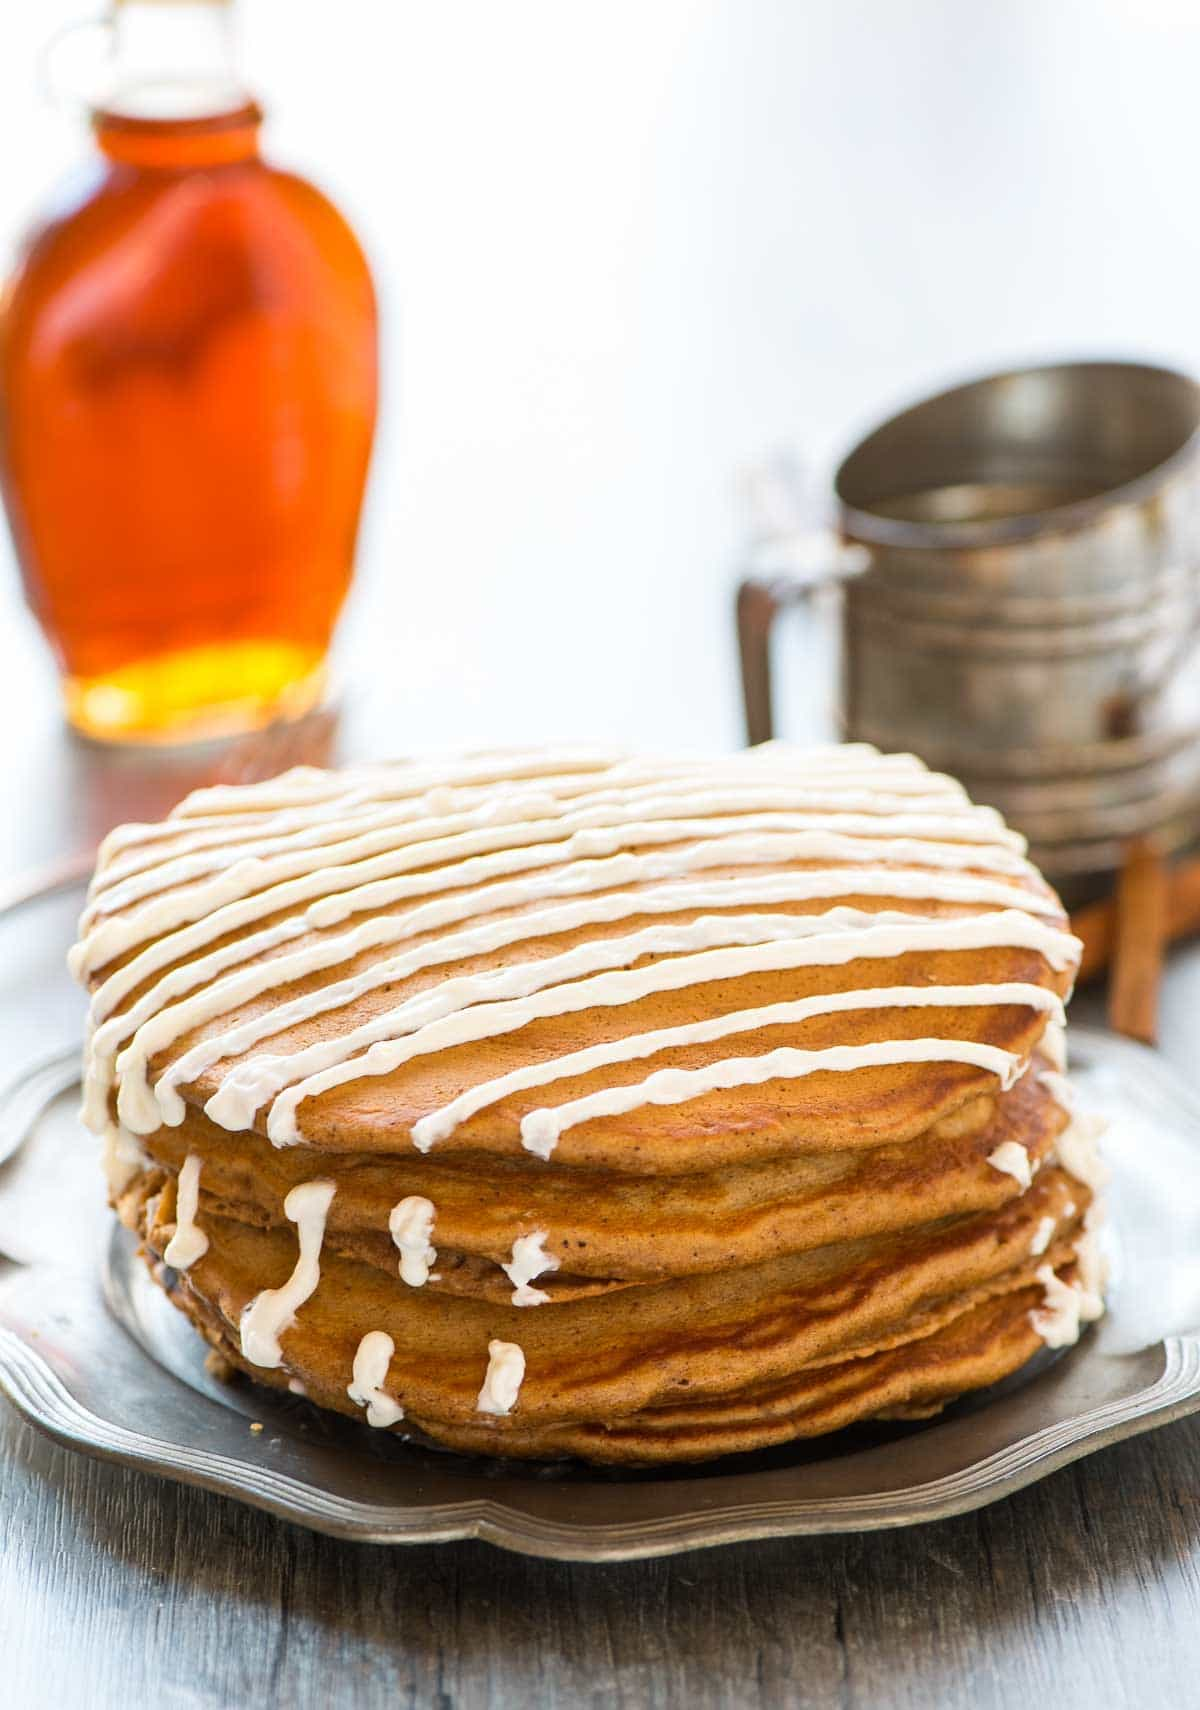 Easy Gingerbread Pancakes recipe made without molasses. So soft and fluffy! Recipe at wellplated.com | @wellplated